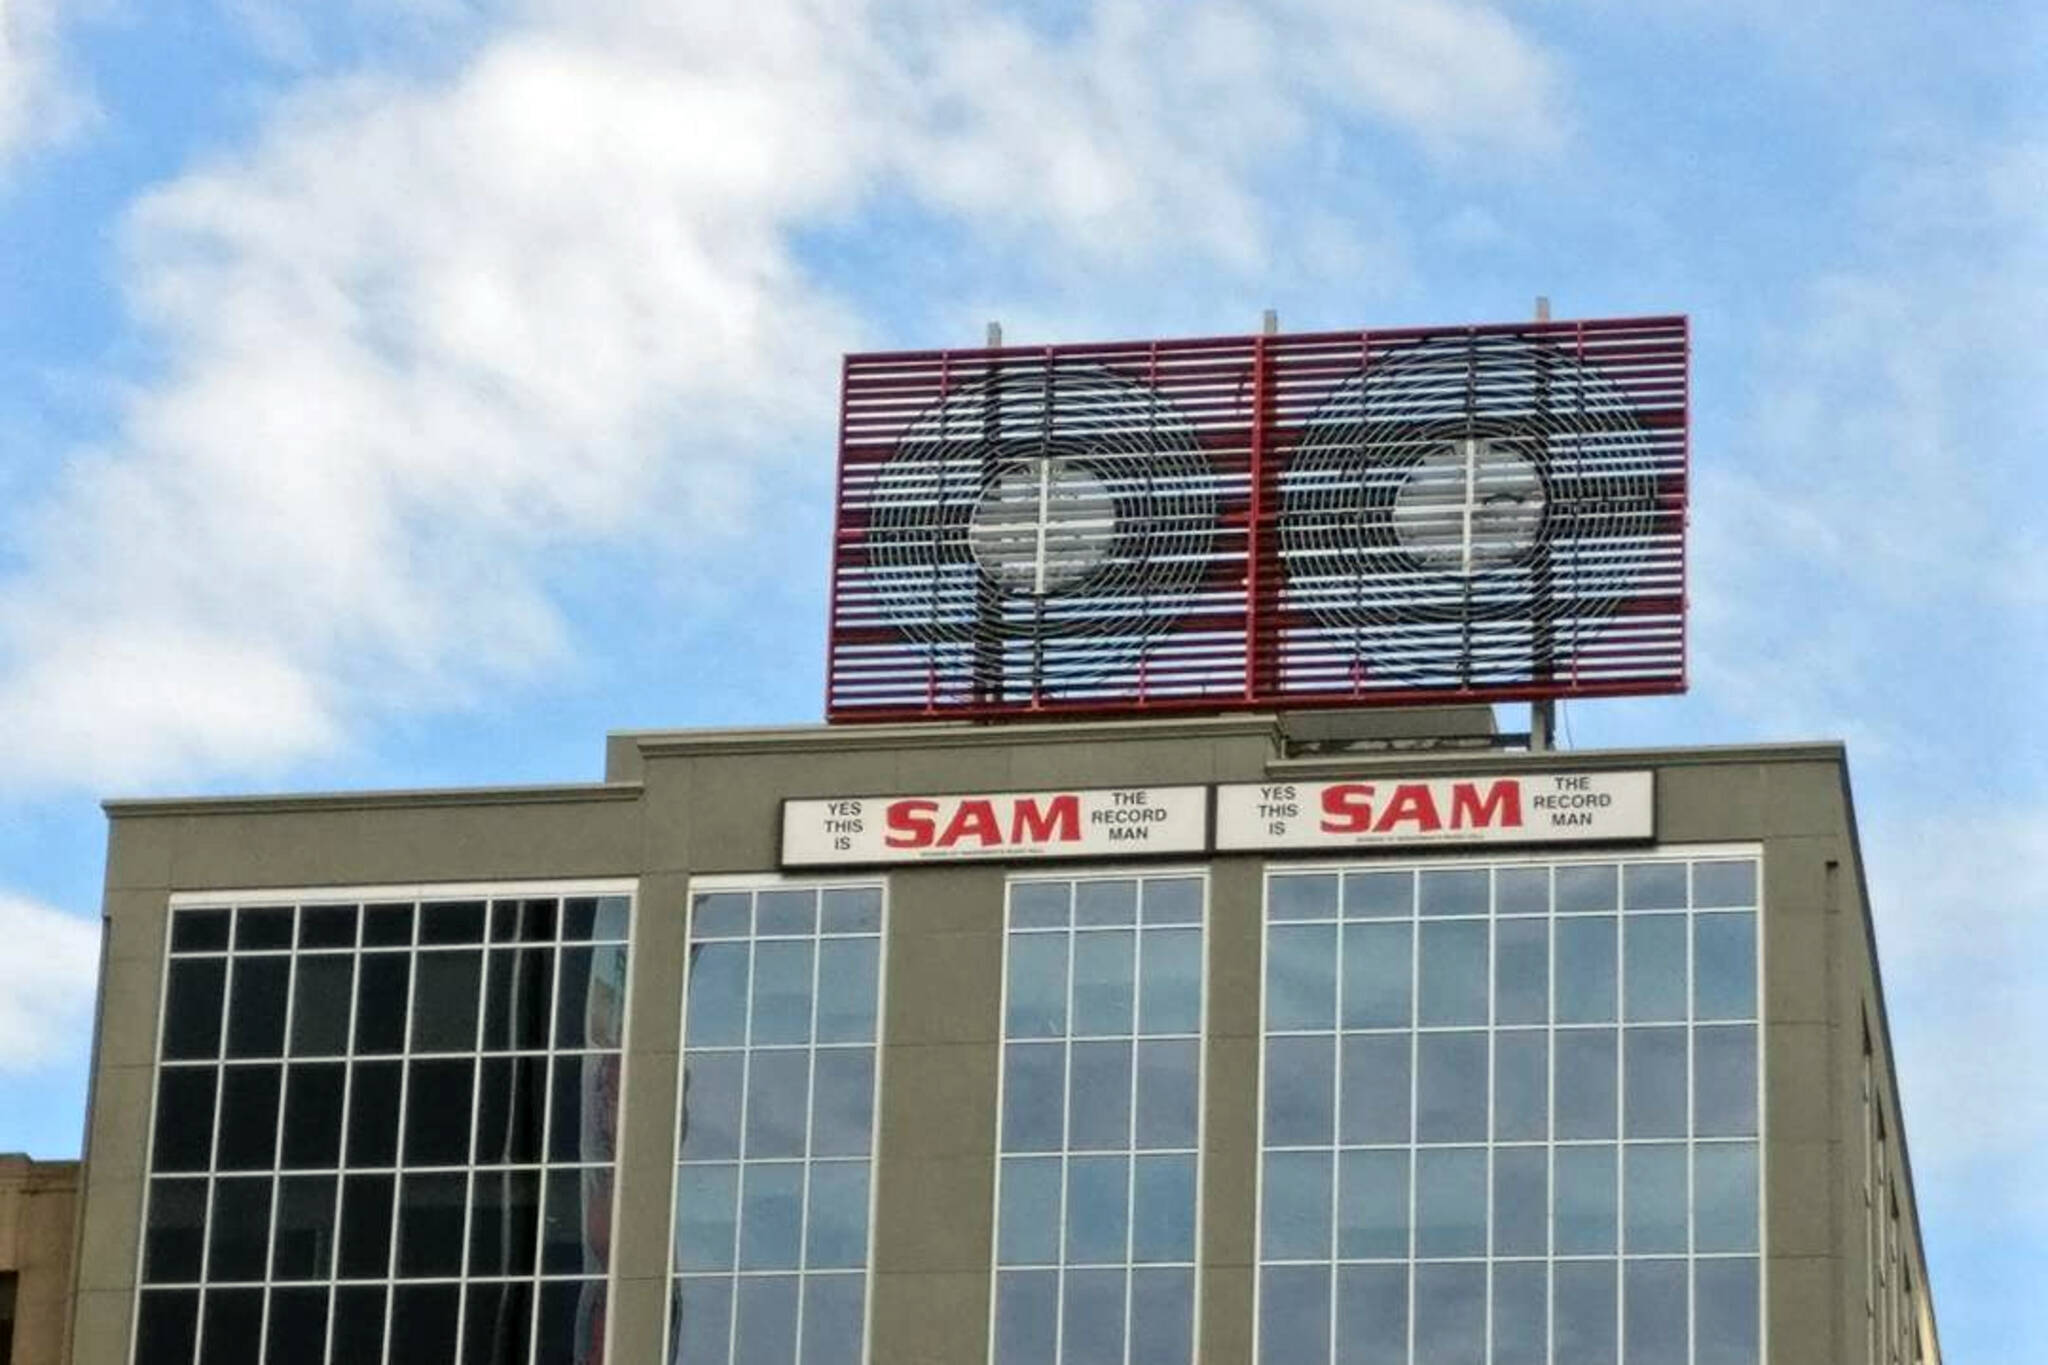 Sam the record man sign